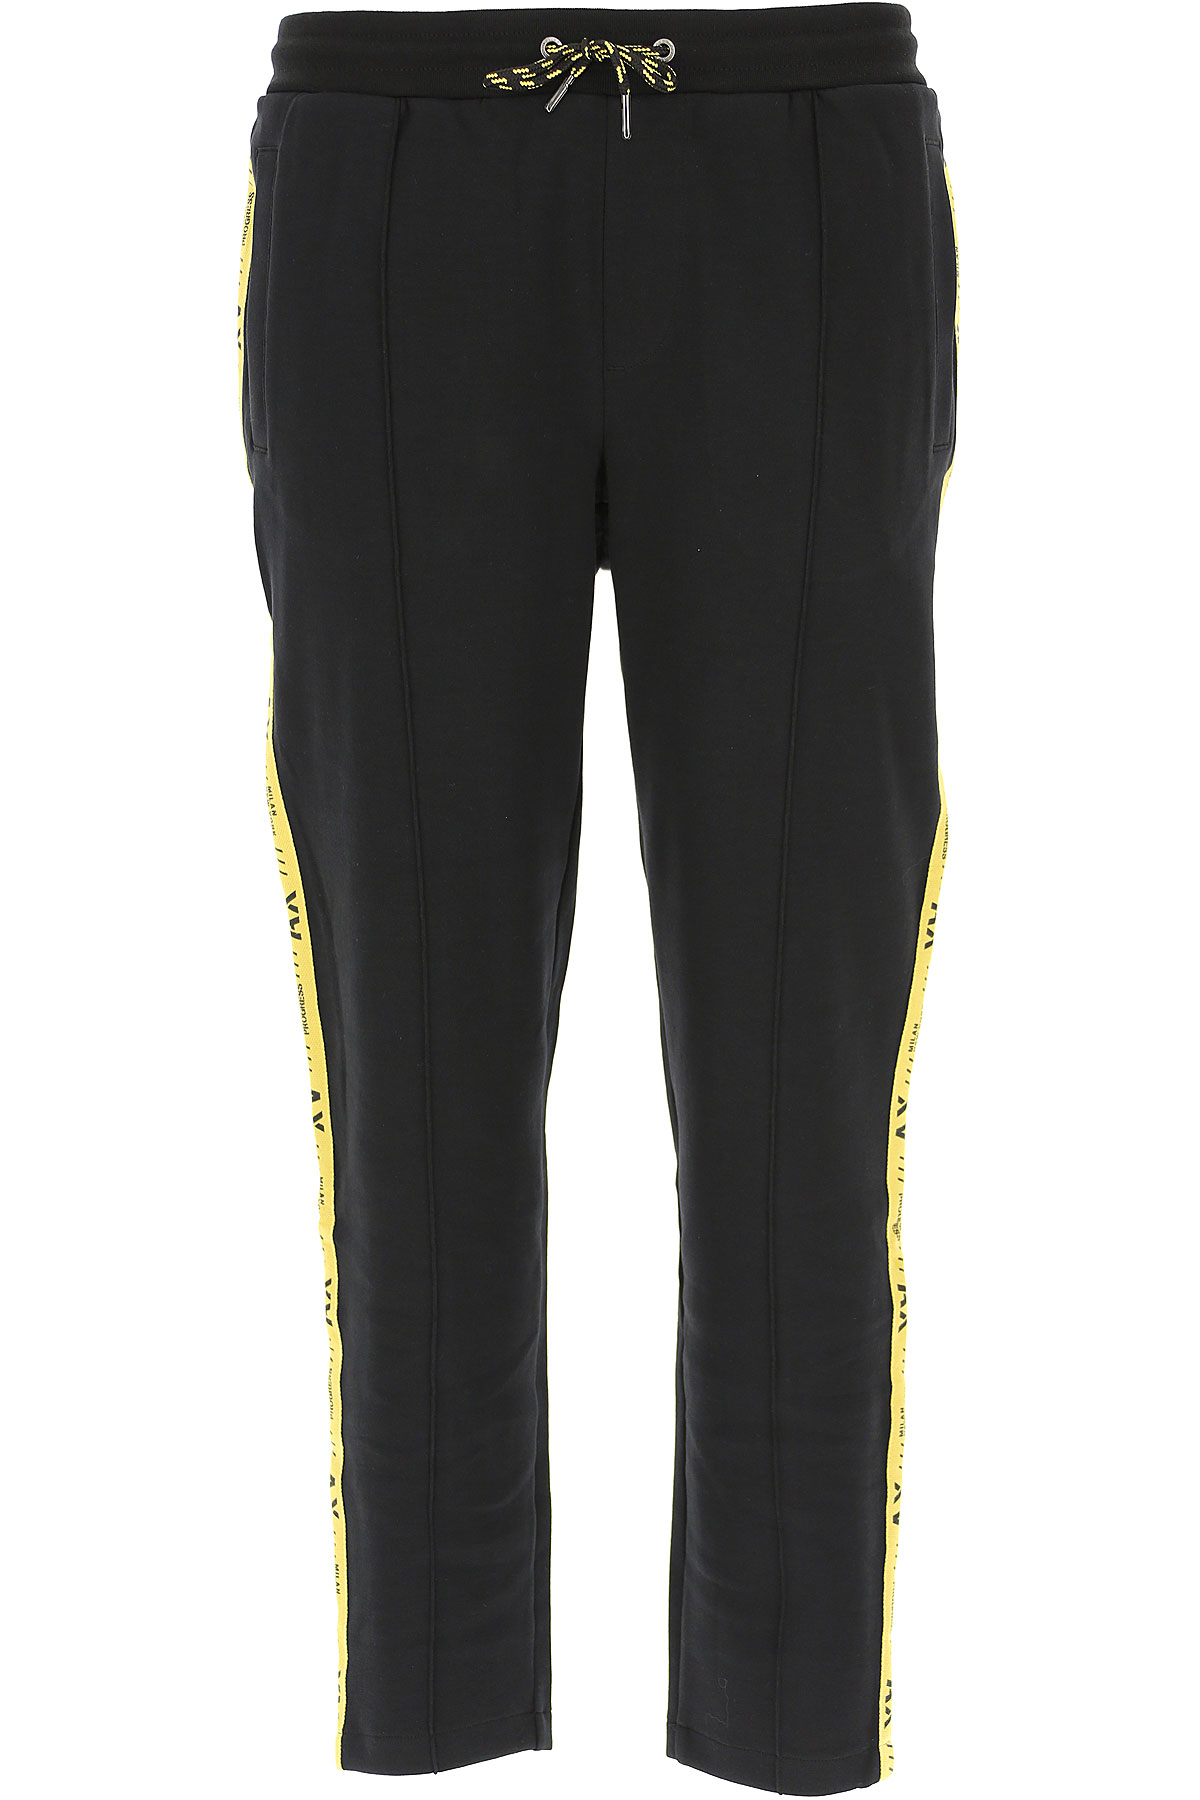 Armani Exchange Men's Sportswear for Gym Workouts and Running On Sale in Outlet, Black, Cotton, 2019, L XL XXL